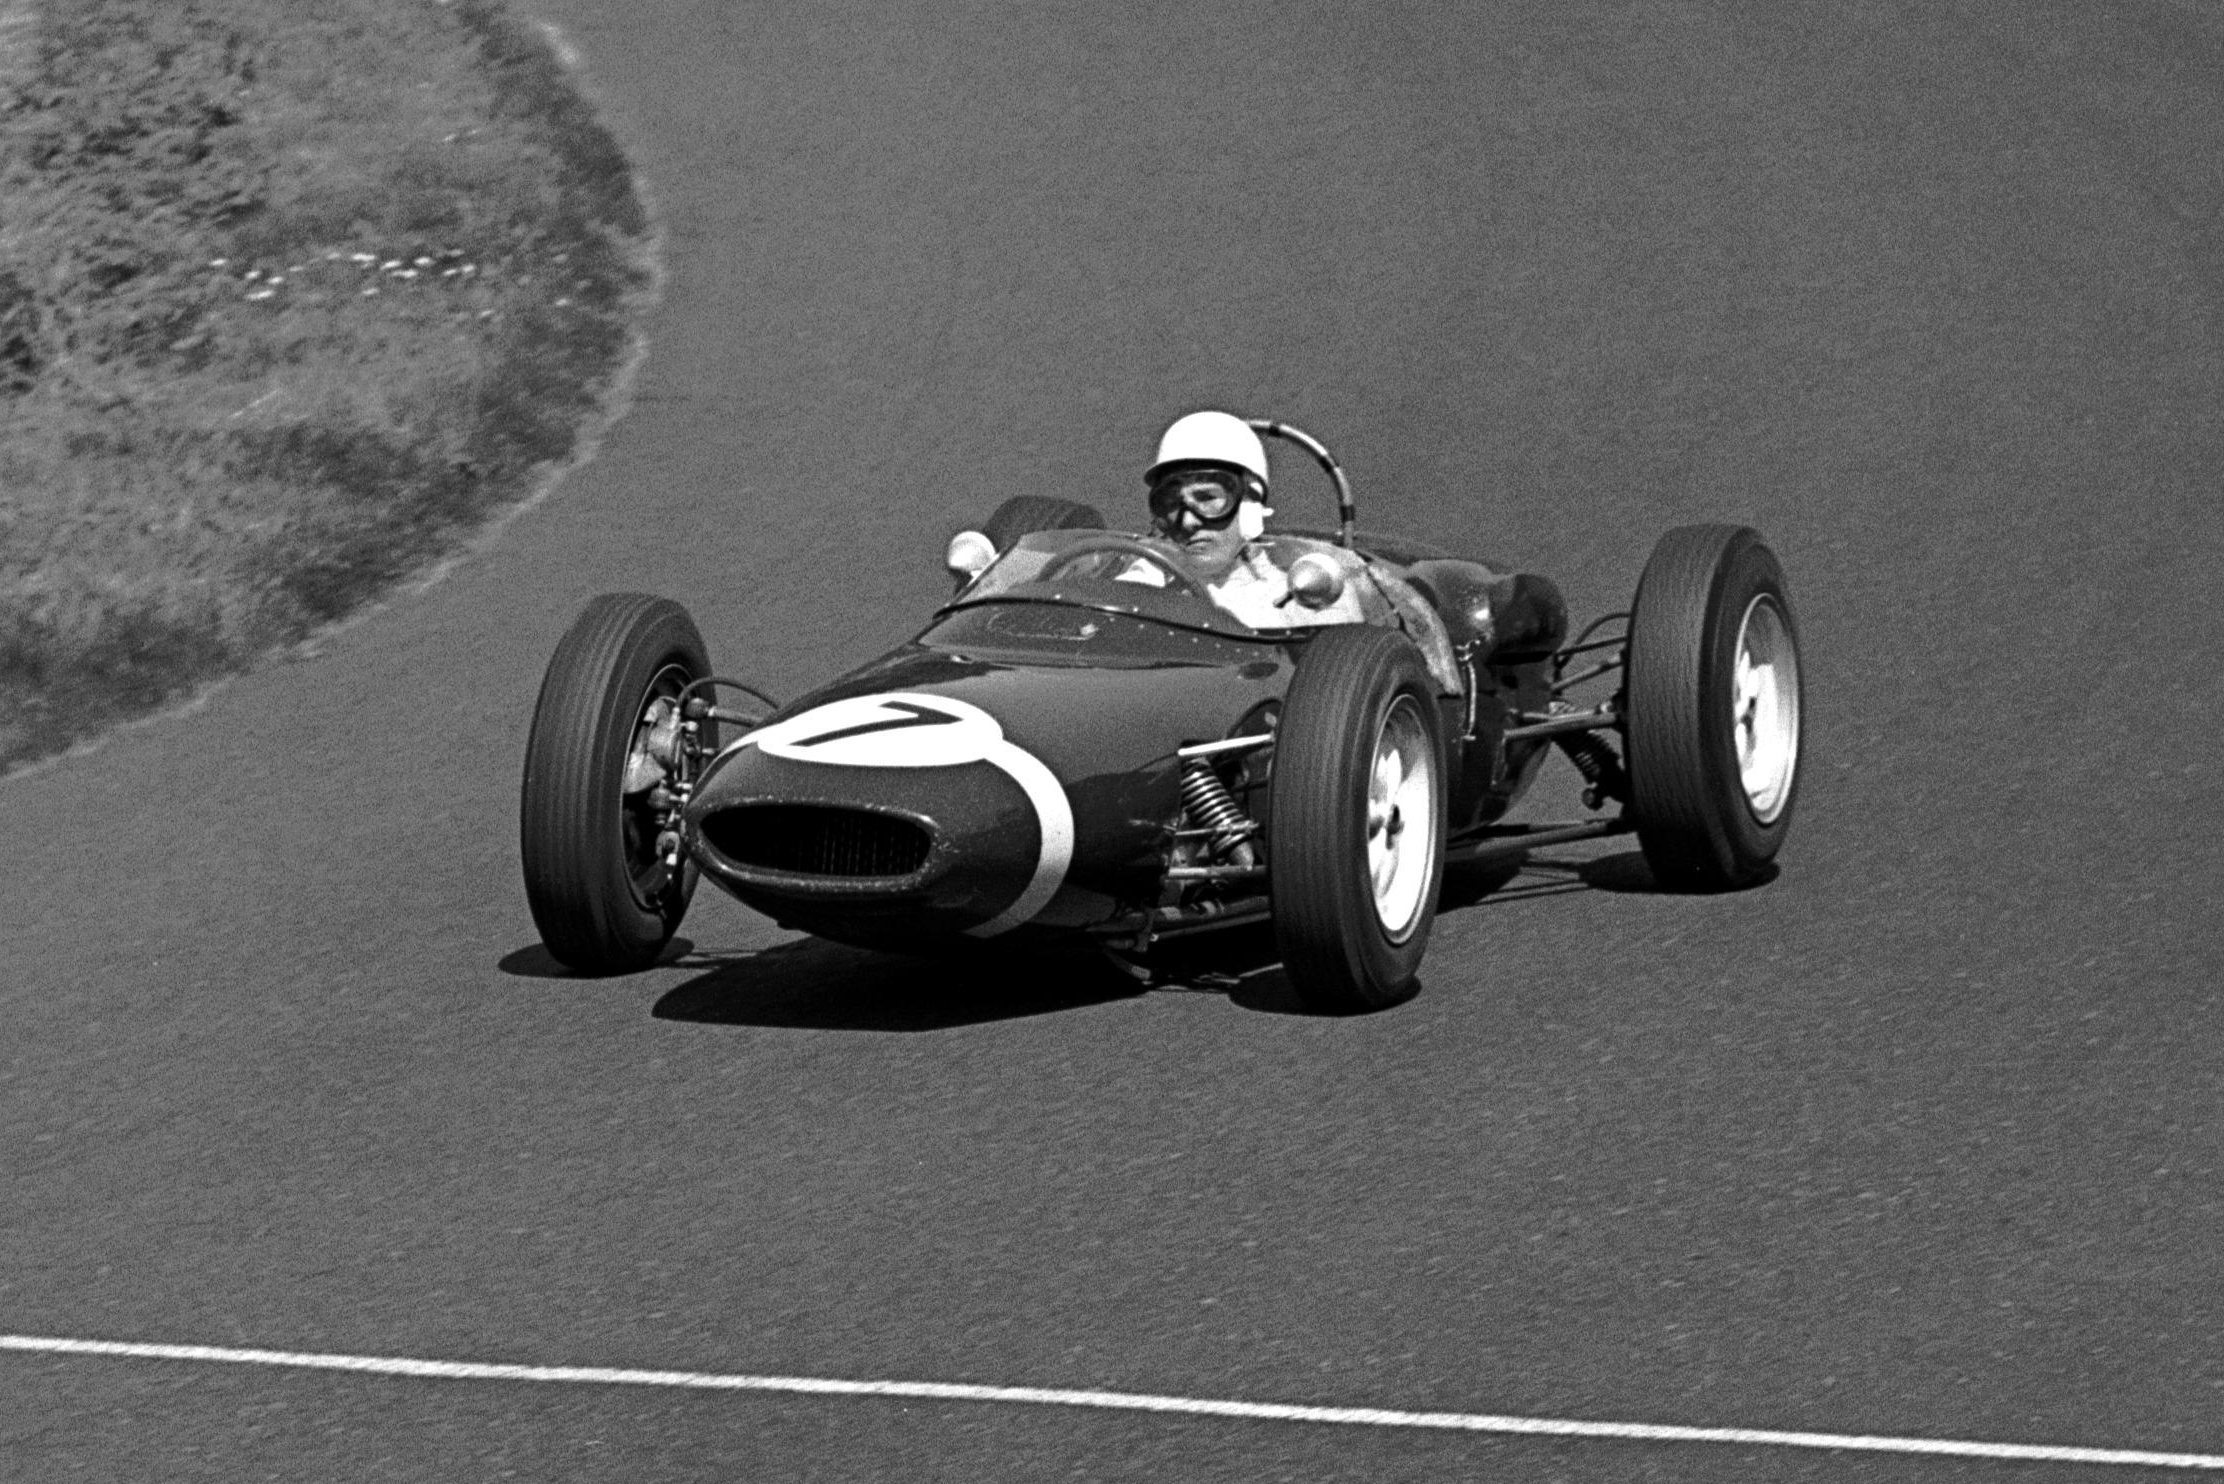 Race winner Stirling Moss wiht his Lotus 18/21 dominated the race.